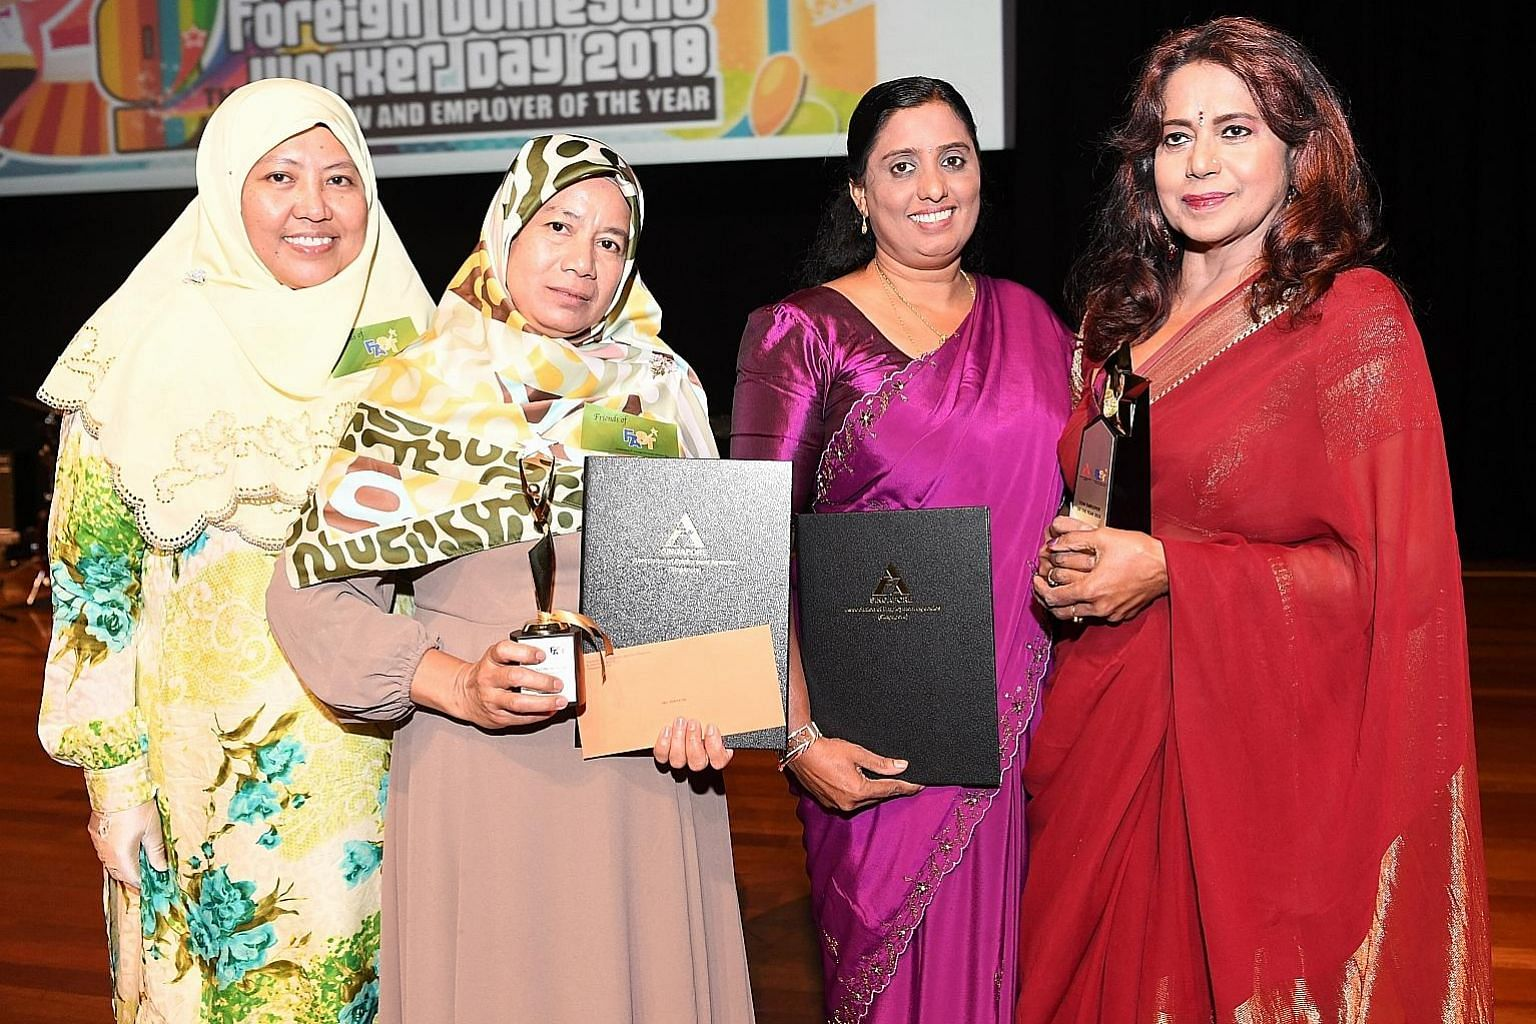 (From left) Employer Umi Saleha with her FDW Sri Wahyuni, who won the FDW of the year award; and FDW Sasenthu Kankanamge Suneetha Iranganie with her employer Bhamah Ramdas, who won the FDW employer of the year award, at yesterday's Foreign Domestic W